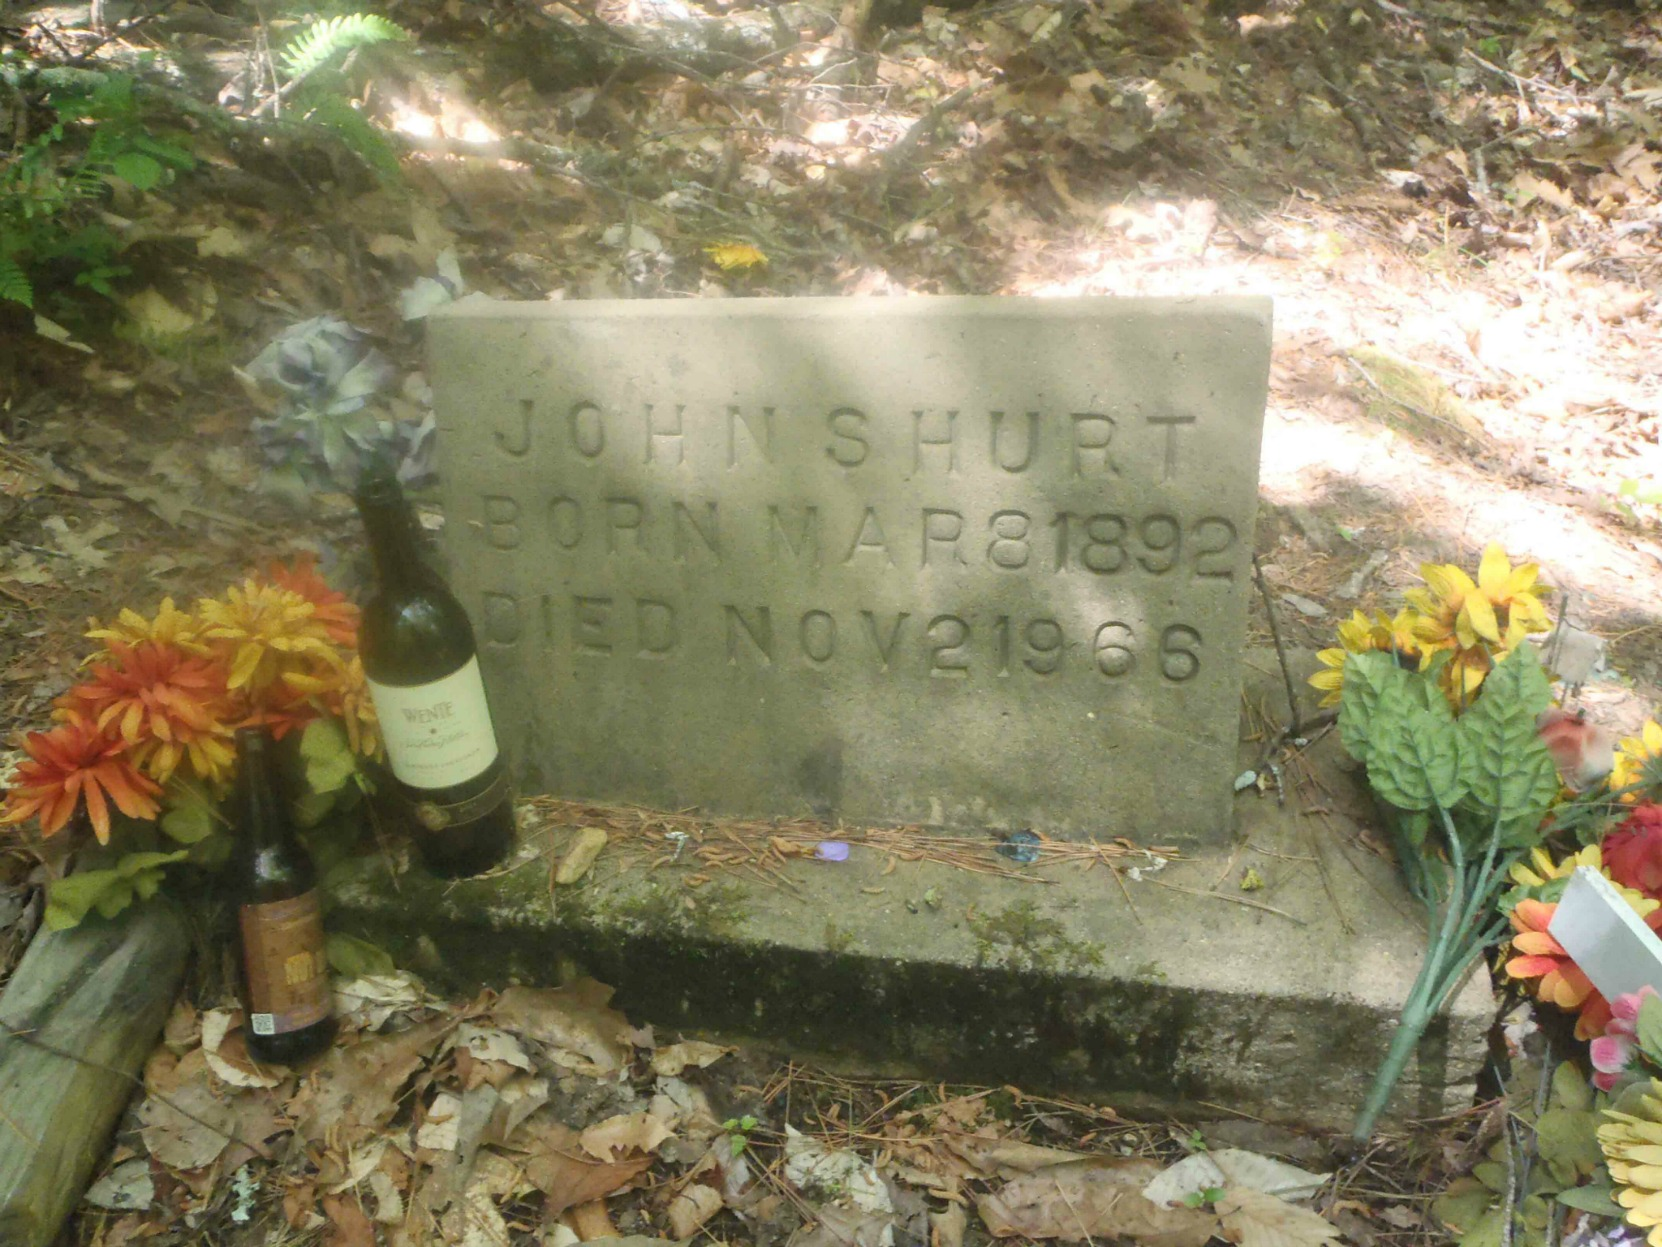 Tribute of flowers, liquor and other items left by fans on Mississippi John Hurt's grave